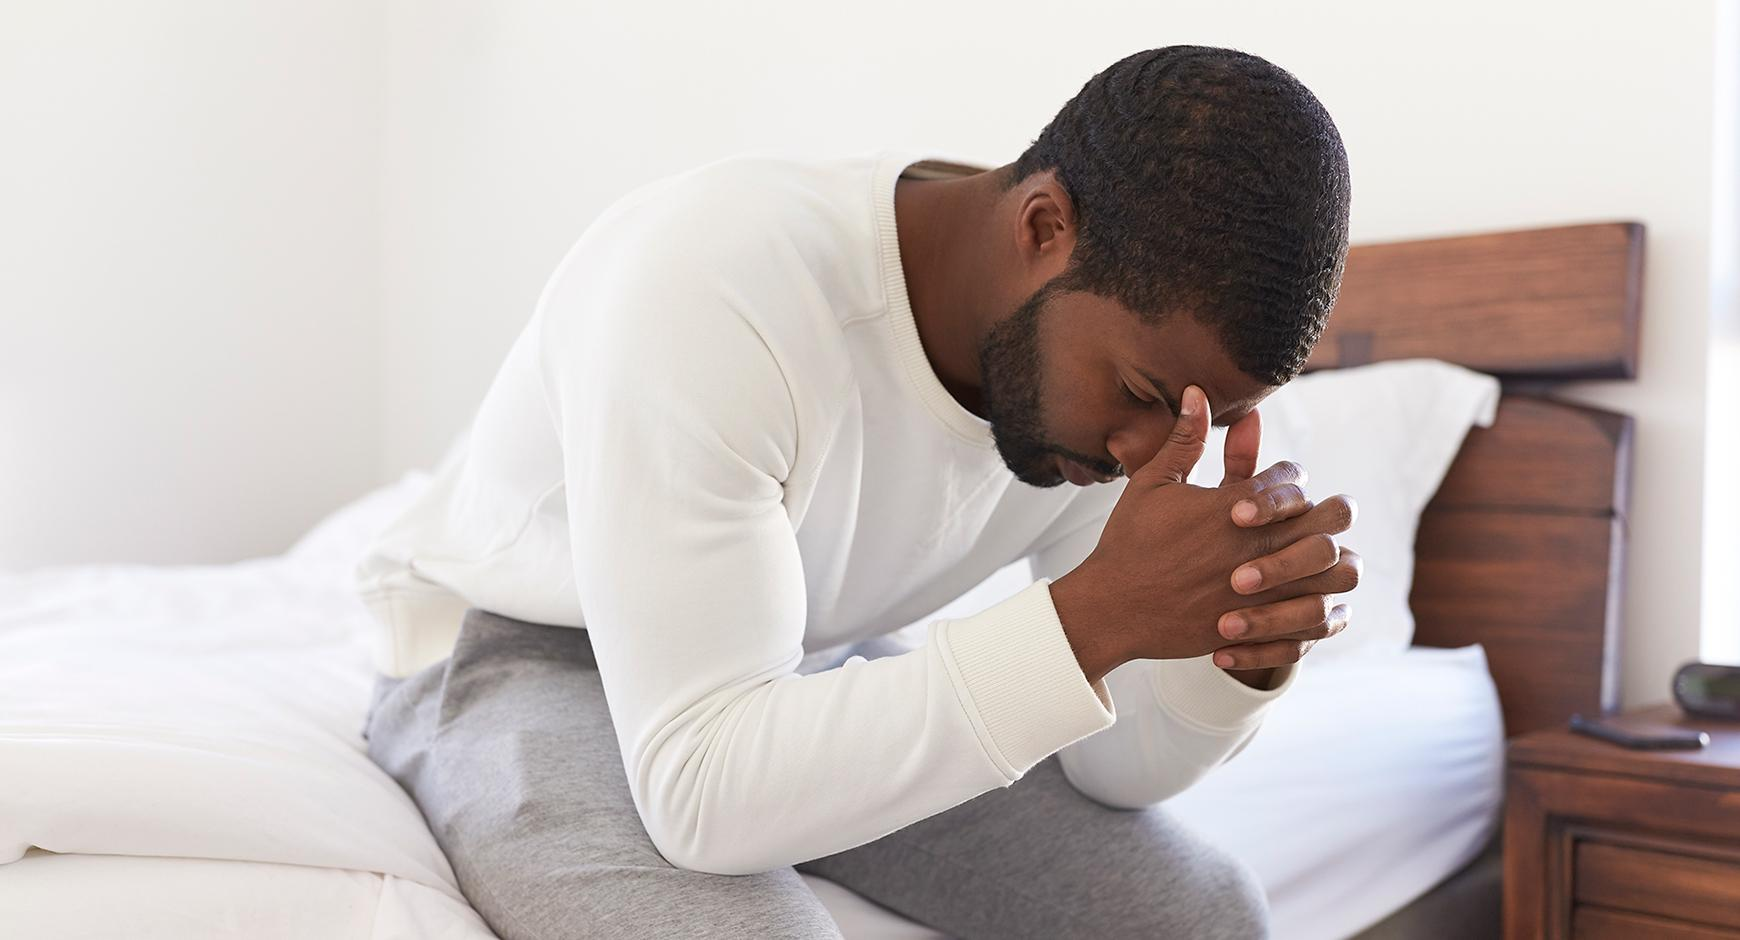 Depressed man looking unhappy sitting on side of the bed